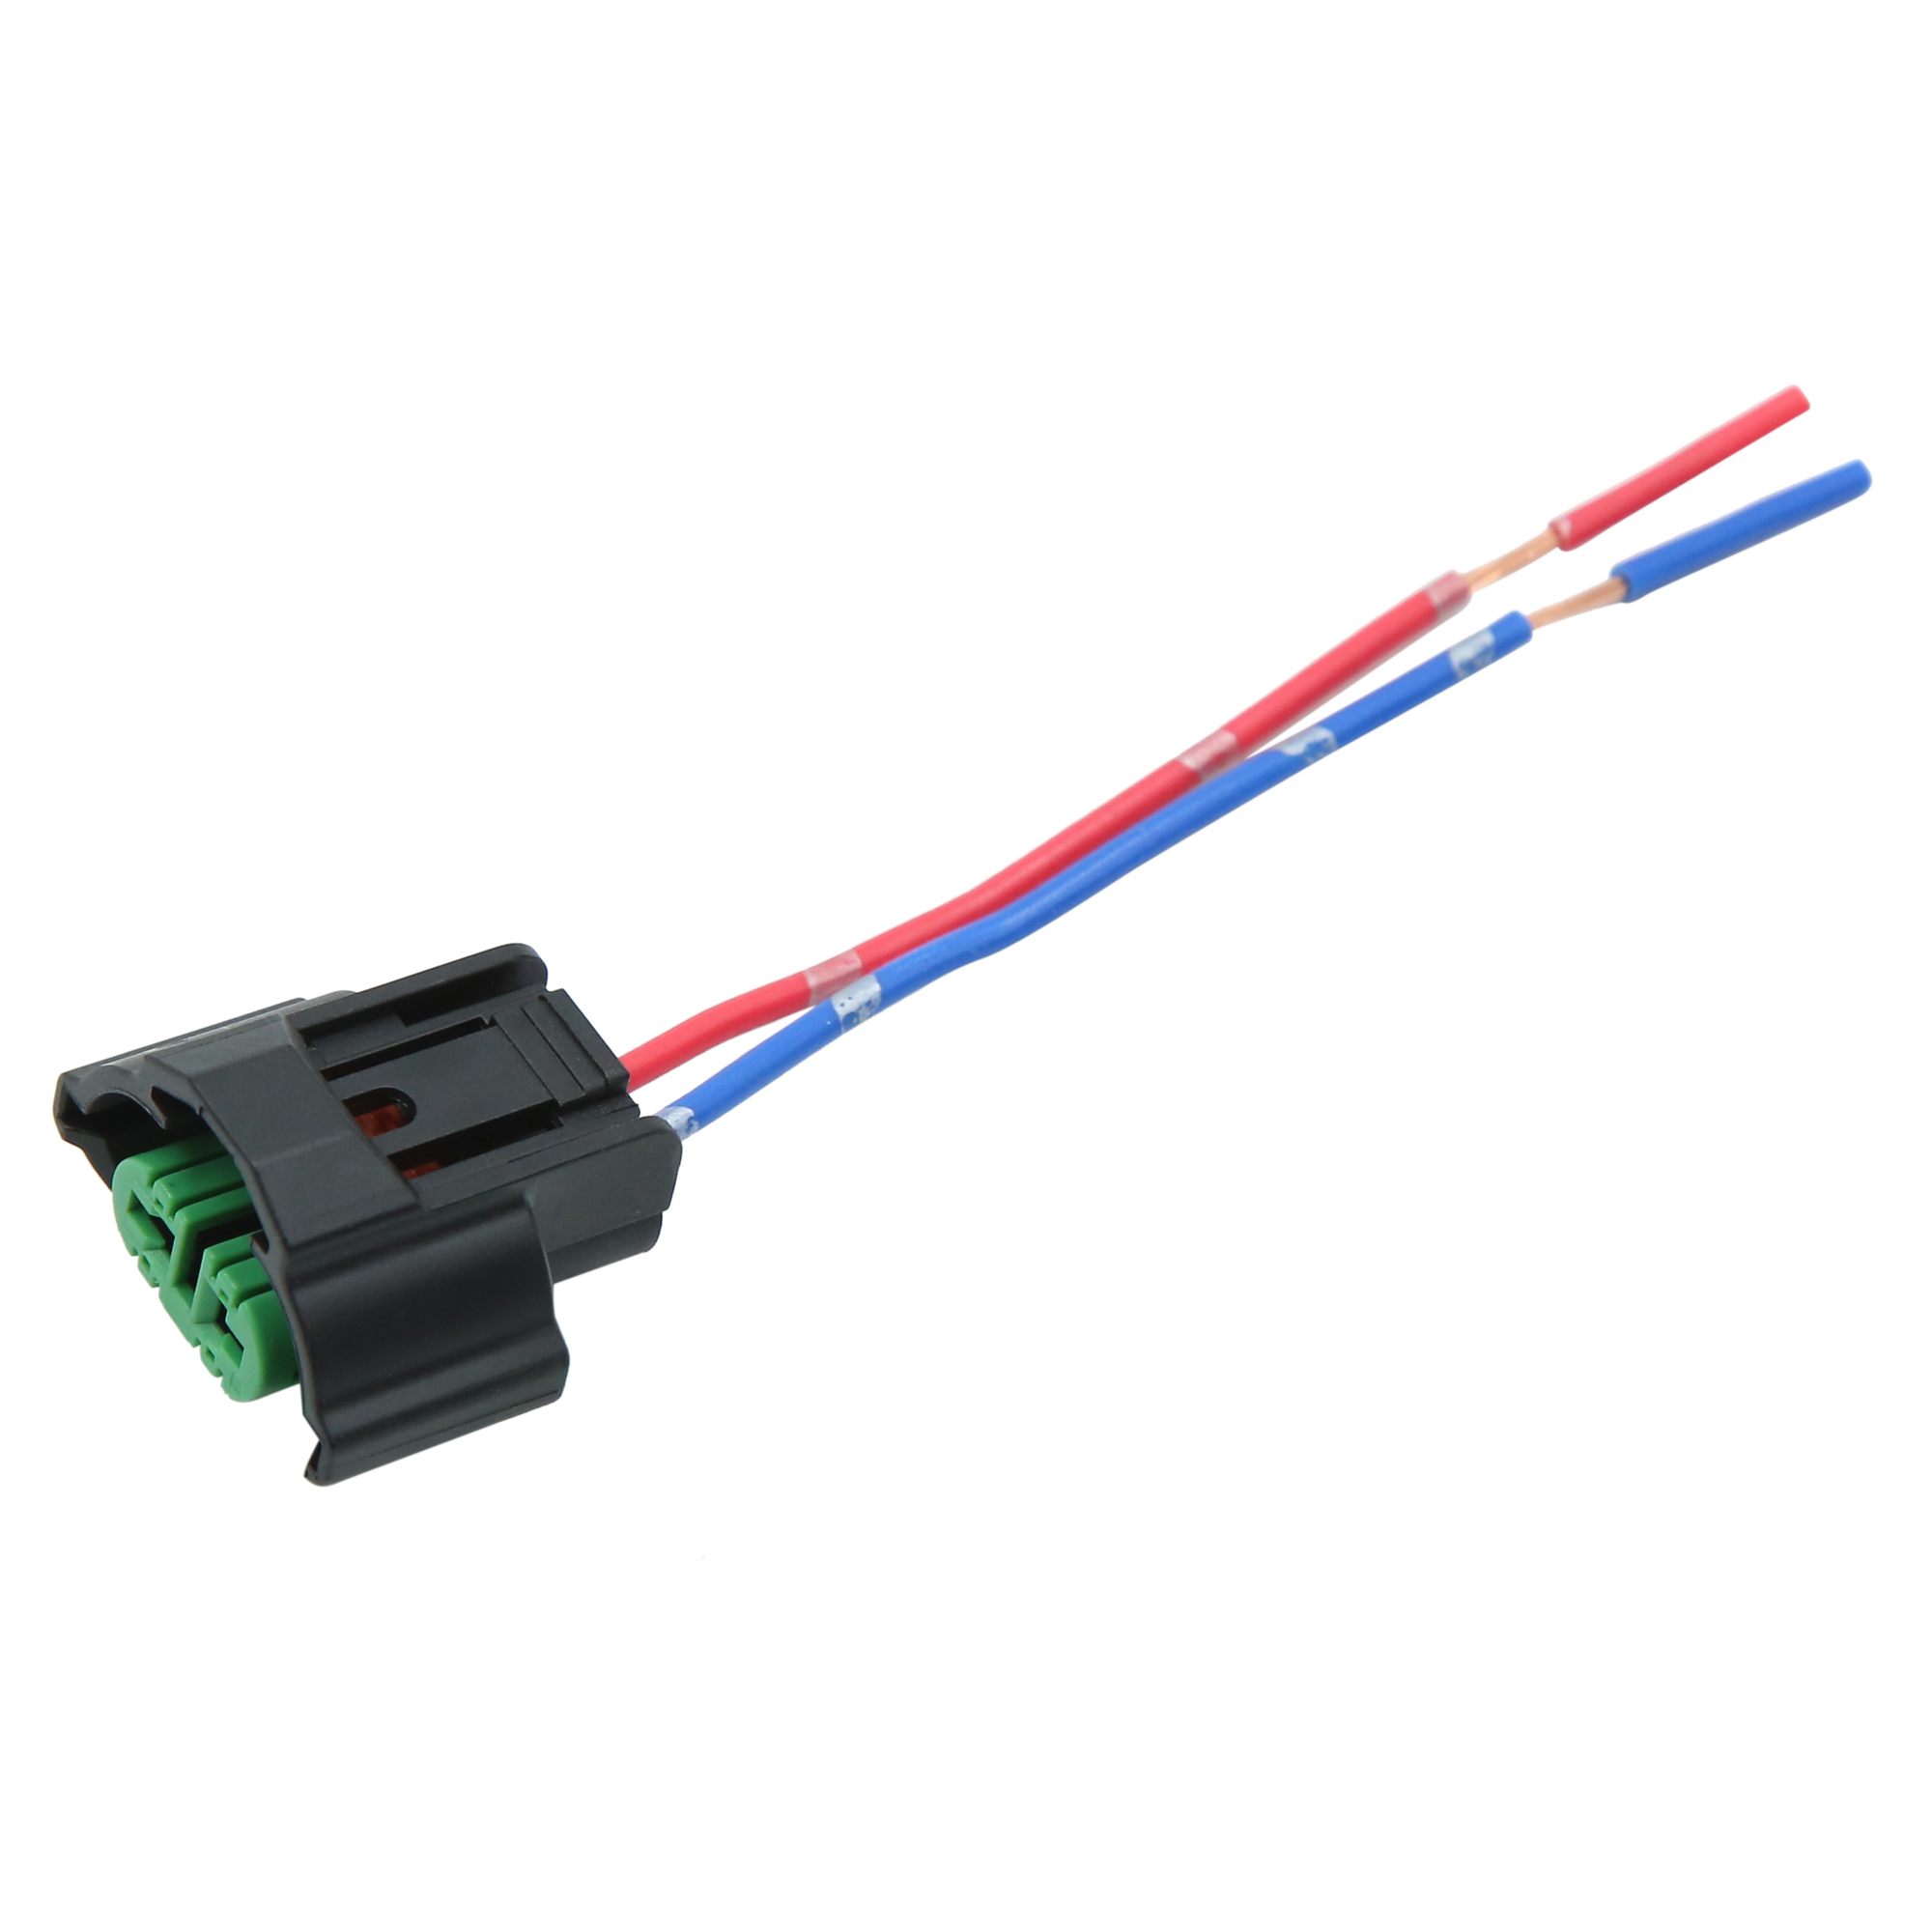 hight resolution of dc 12v wiring harness socket extension connector for car headlight foglight